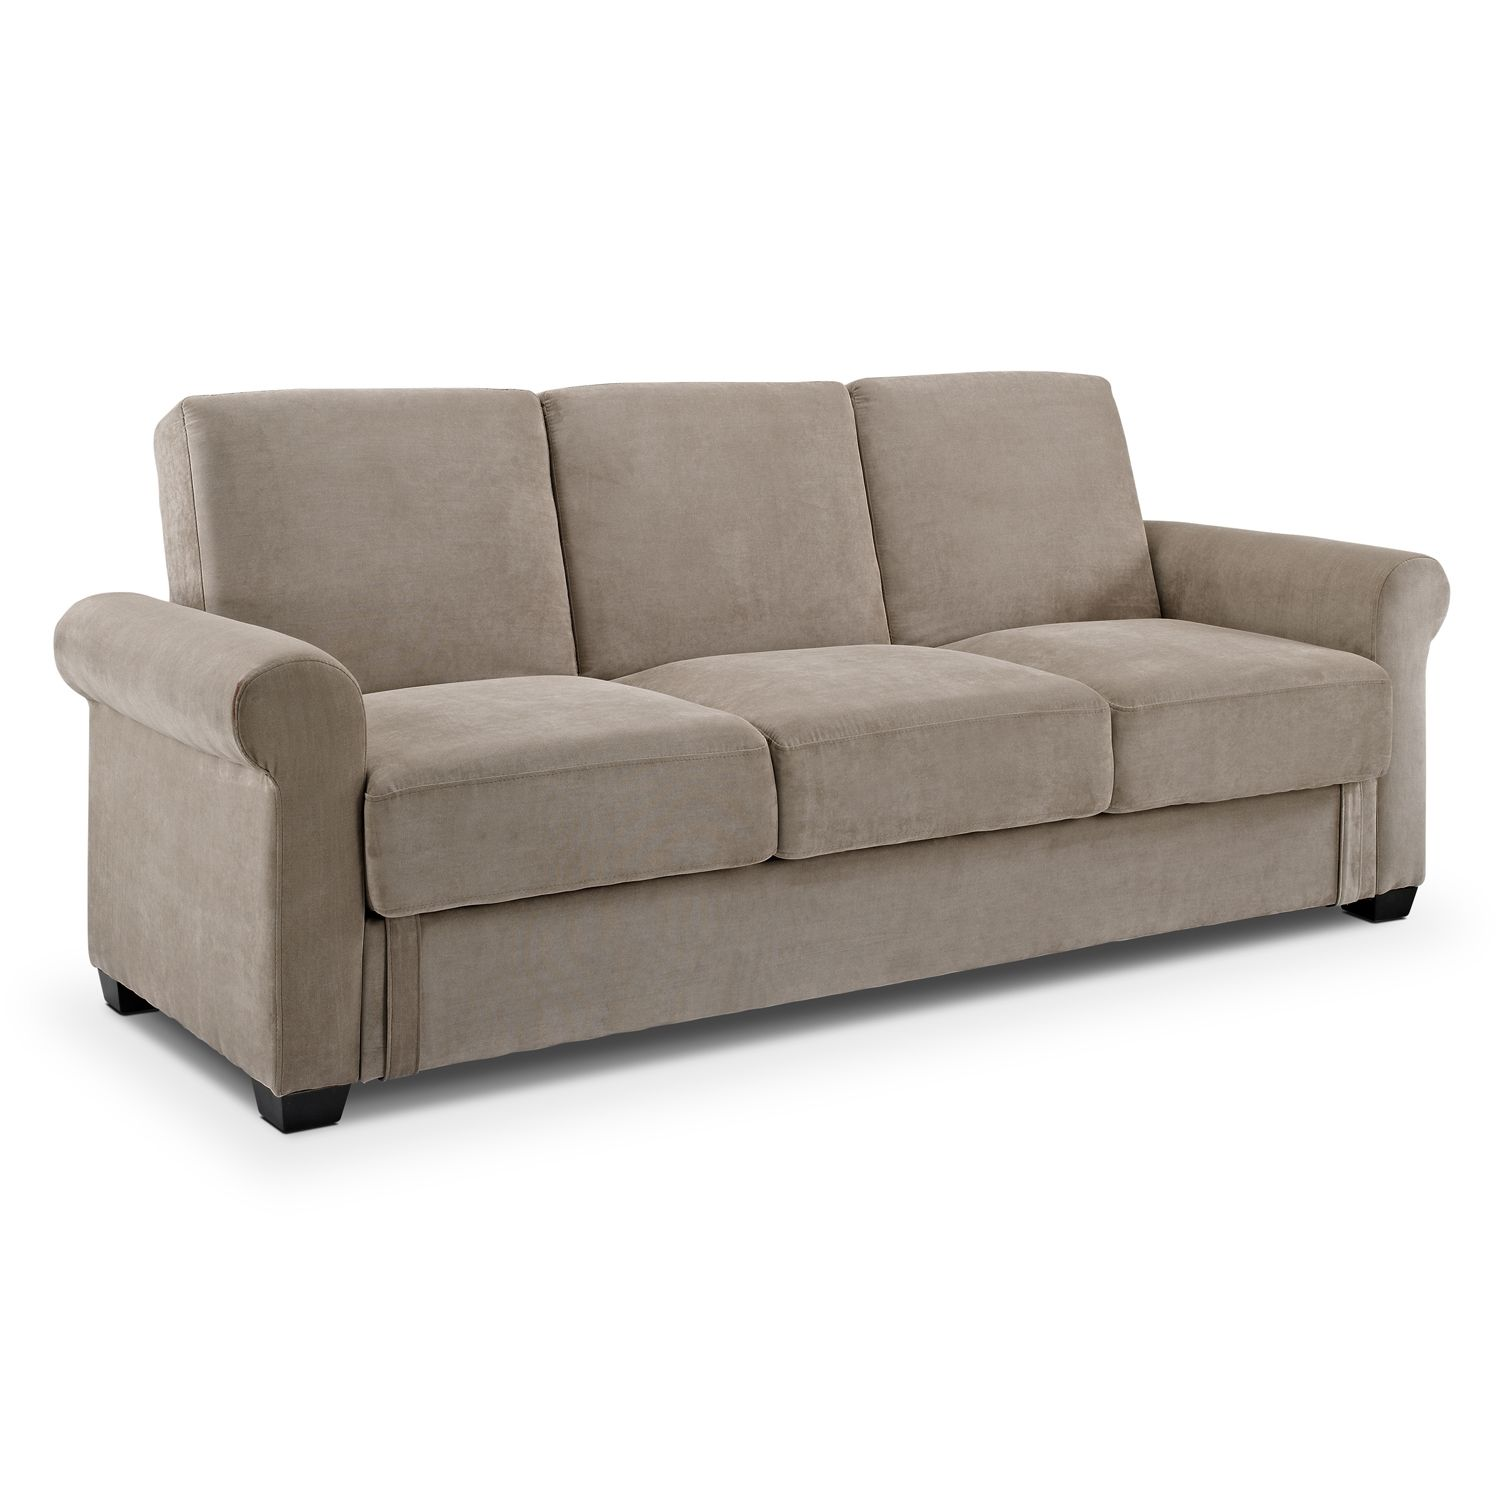 Thomas Upholstery Futon Sofa Bed With Storage